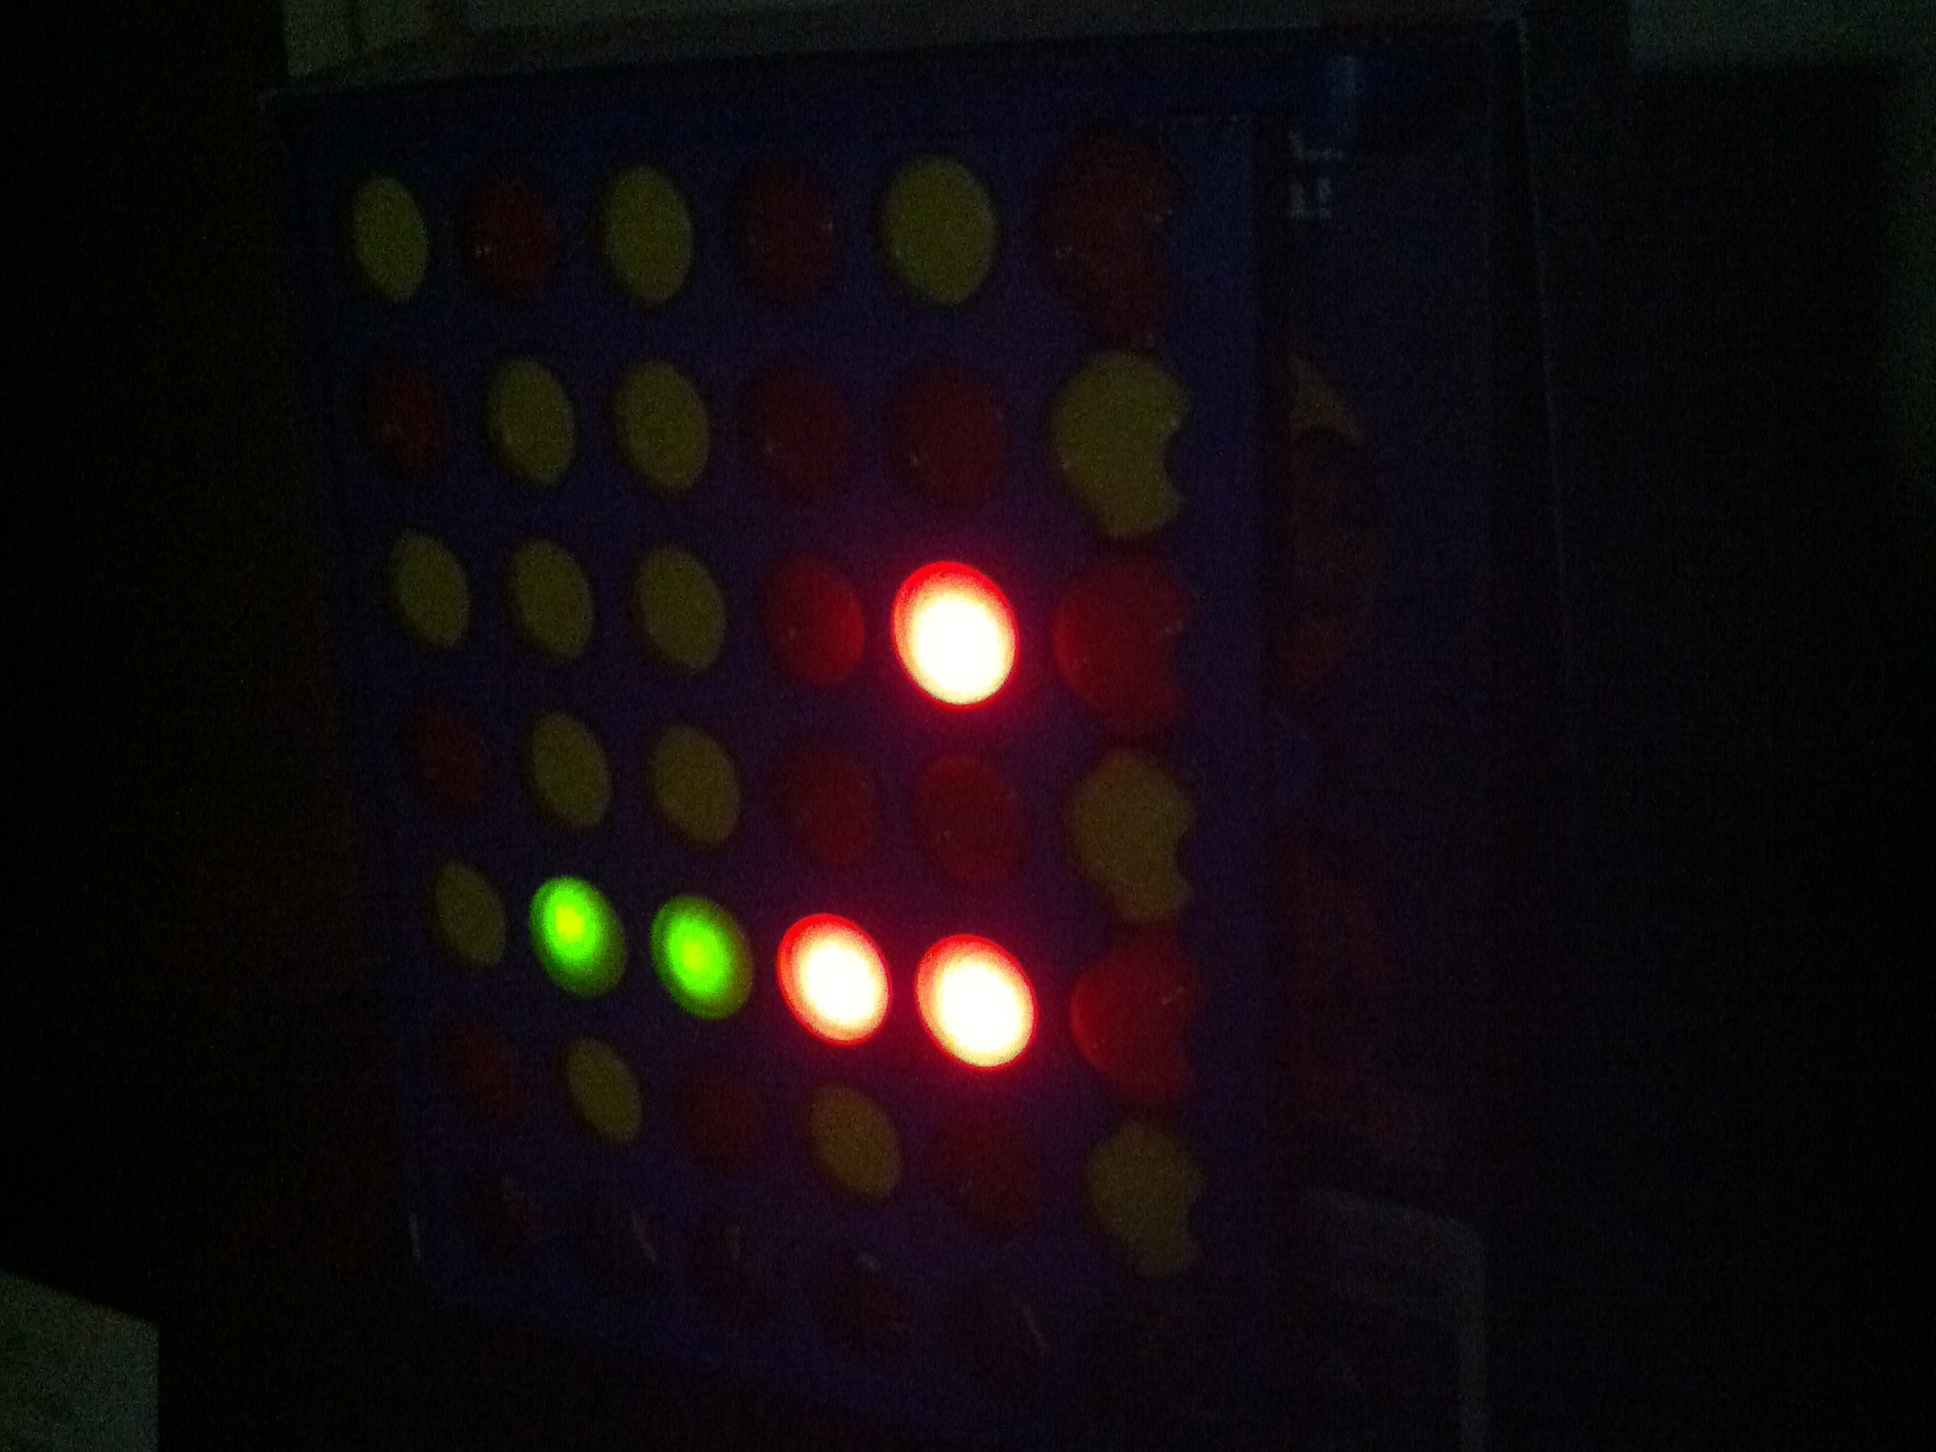 New Project: Connect 4 BinaryClock